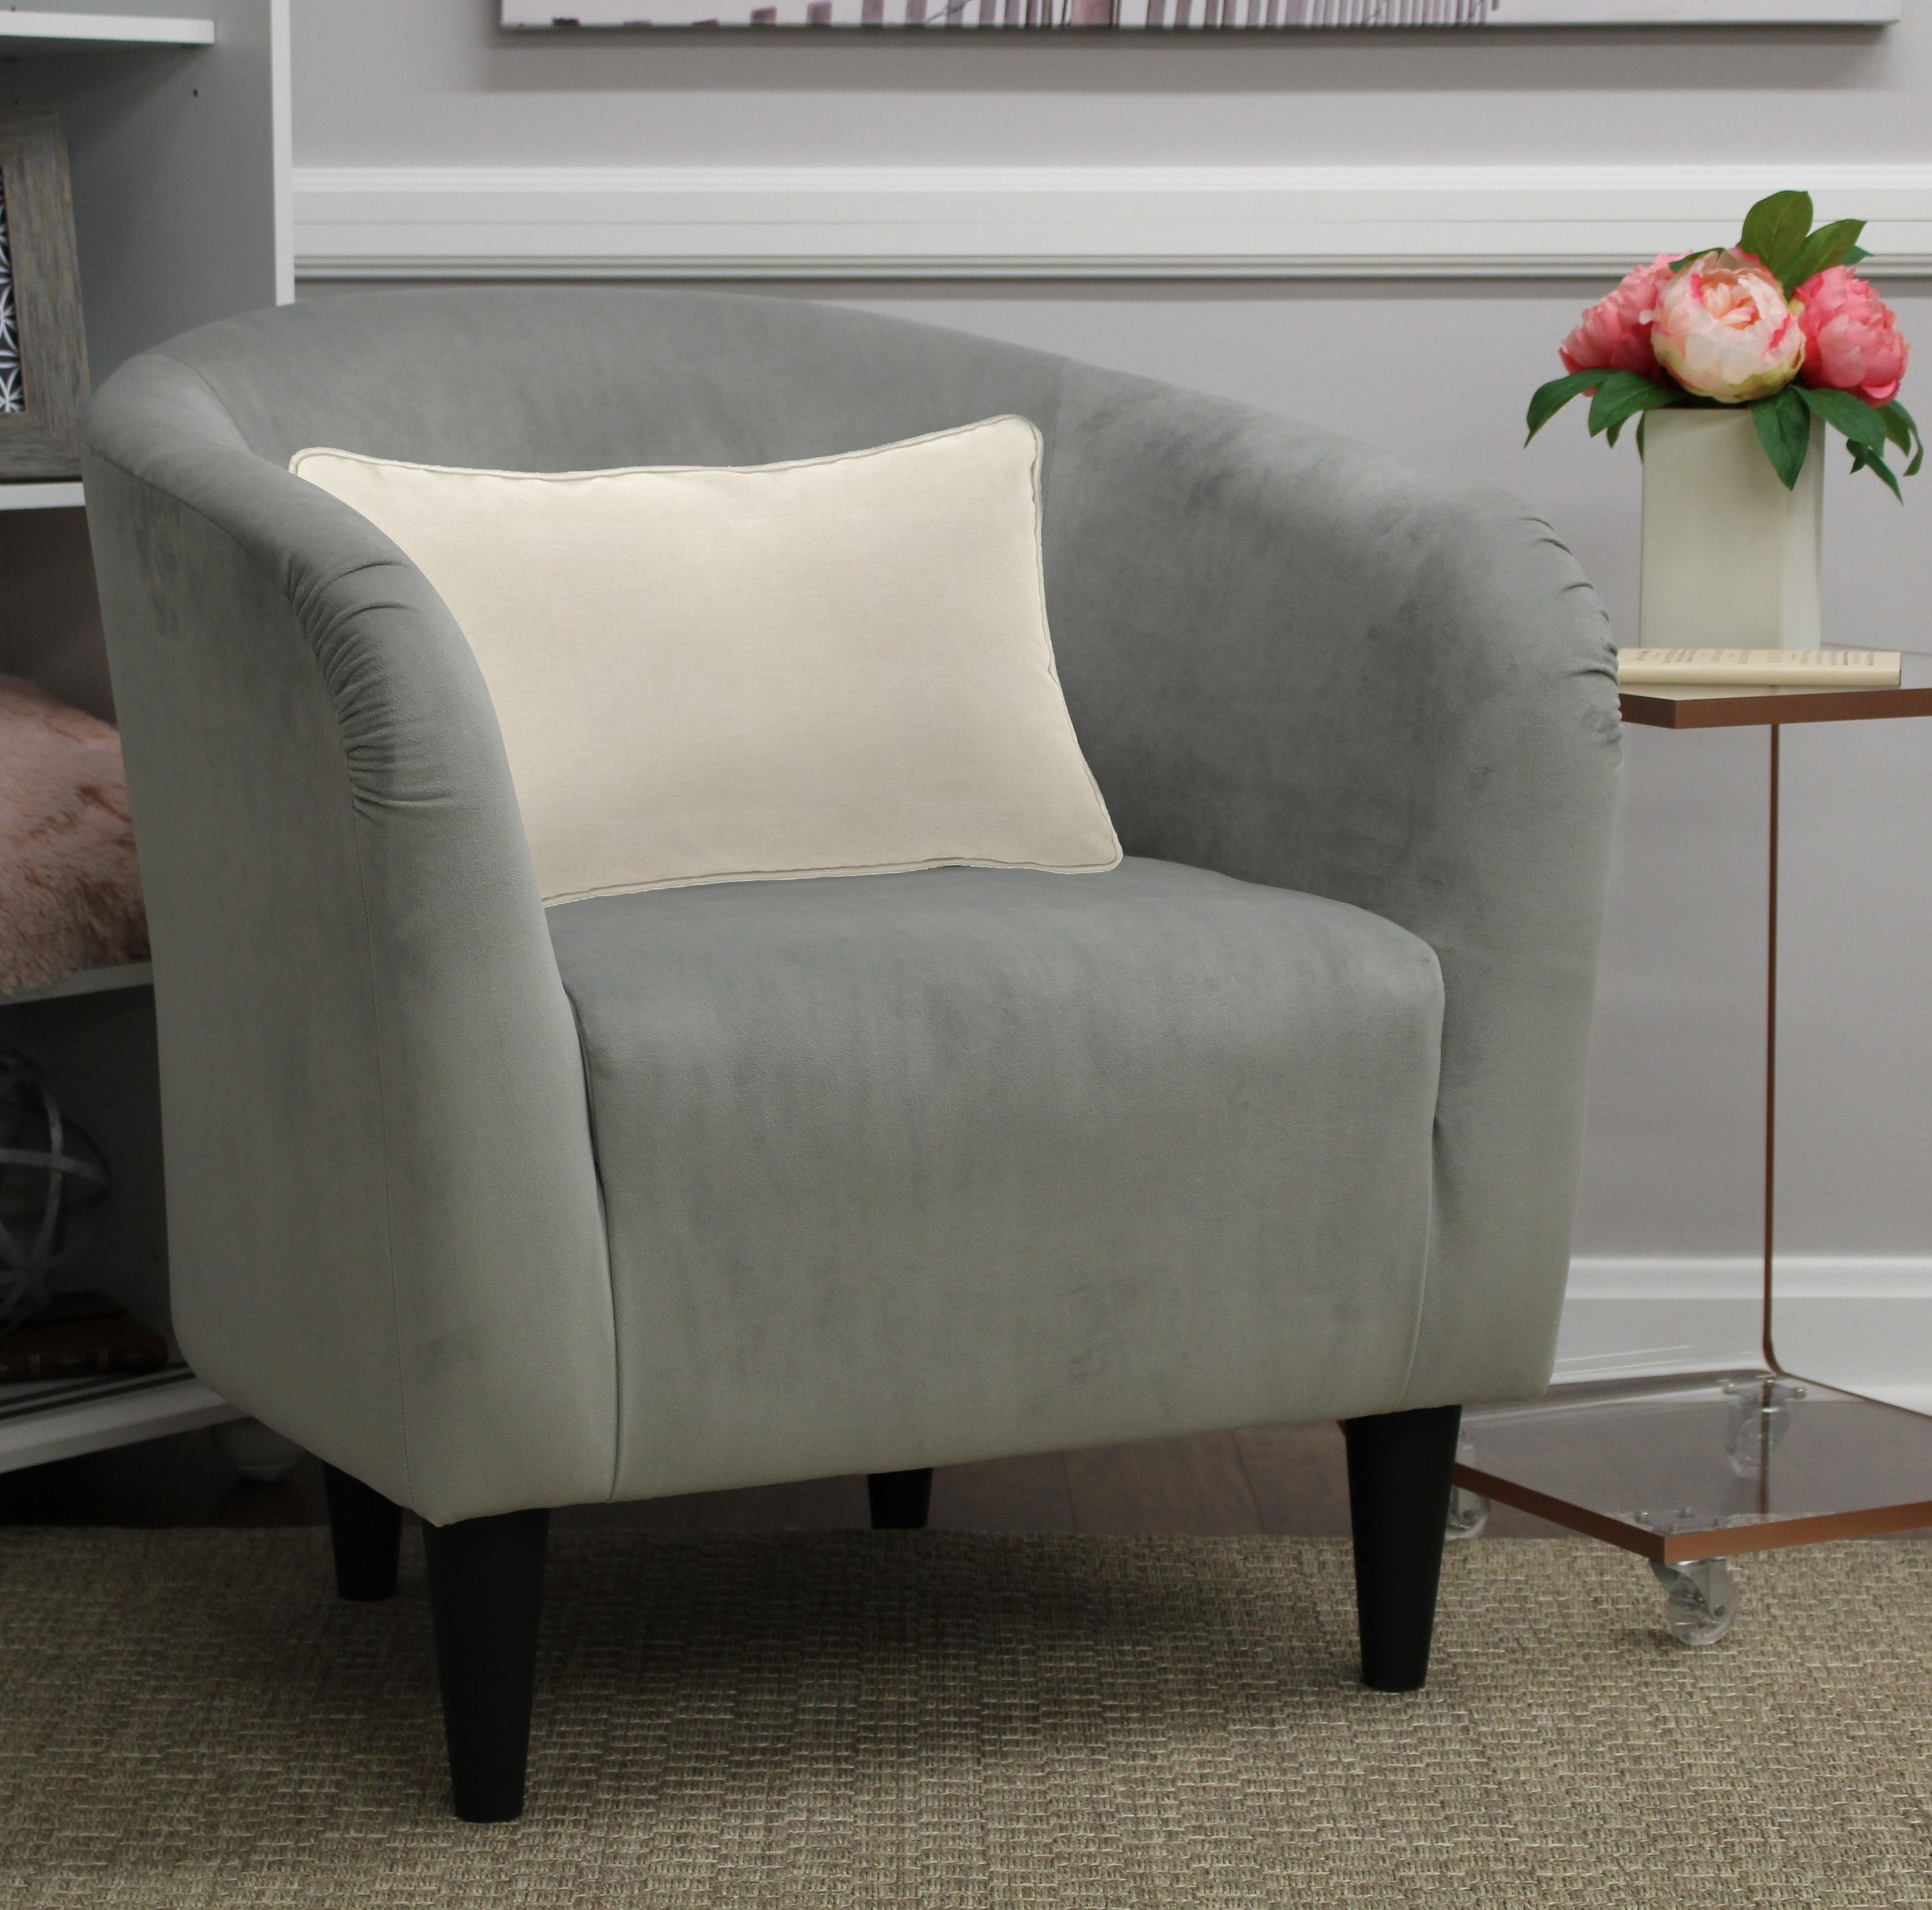 A small gray accent chair